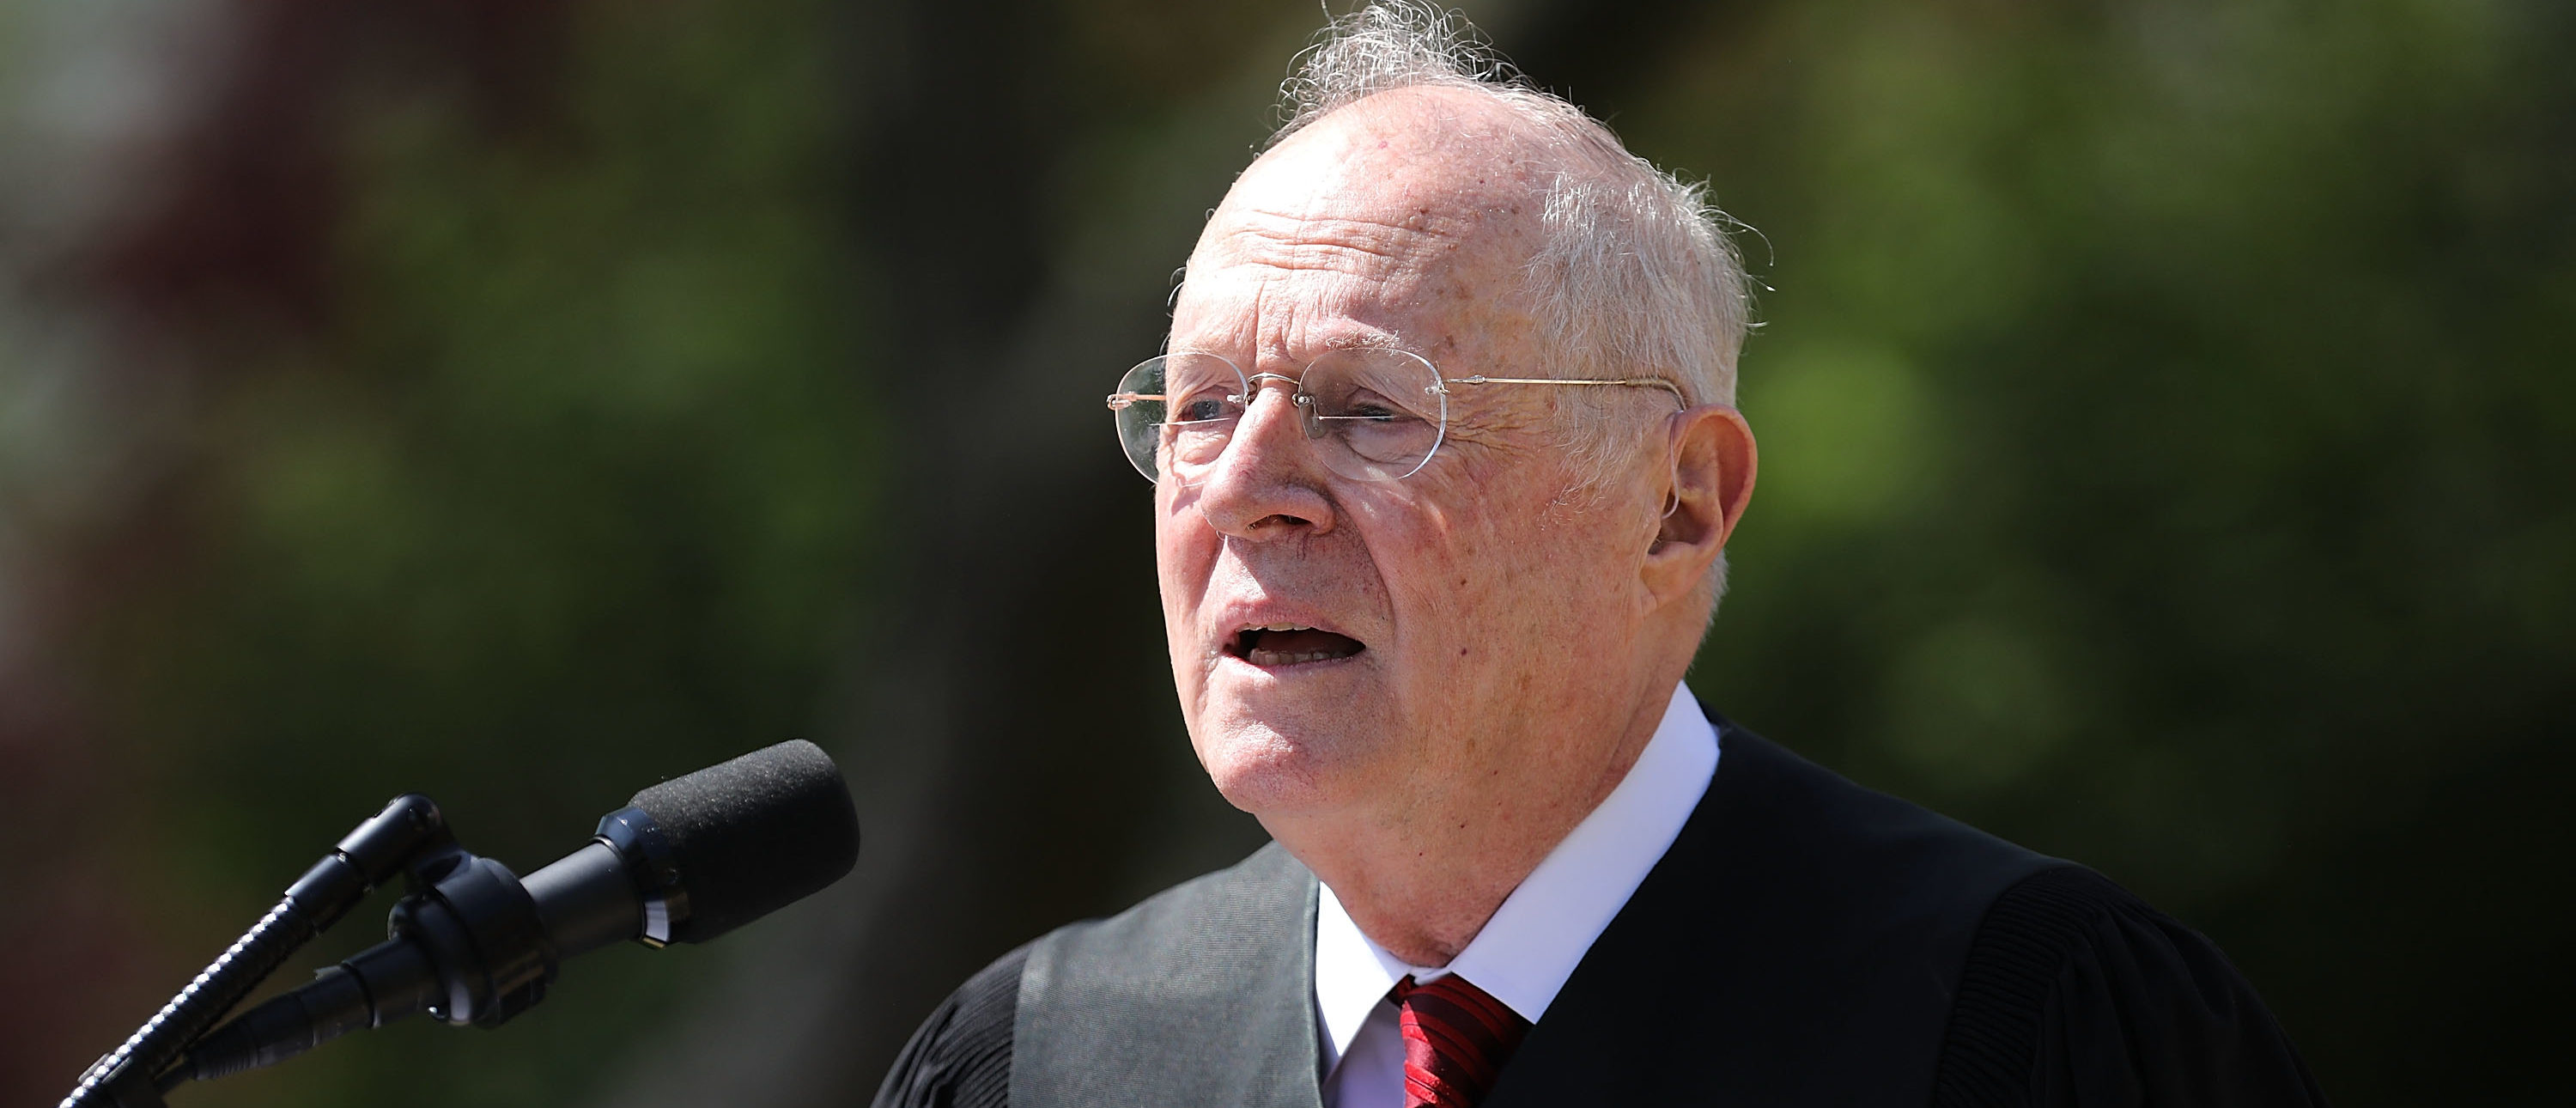 Justice Anthony Kennedy delivers remarks before administering the judicial oath to Justice Neil Gorsuch during a ceremony in the Rose Garden at the White House on April 10, 2017. (Chip Somodevilla/Getty Images)